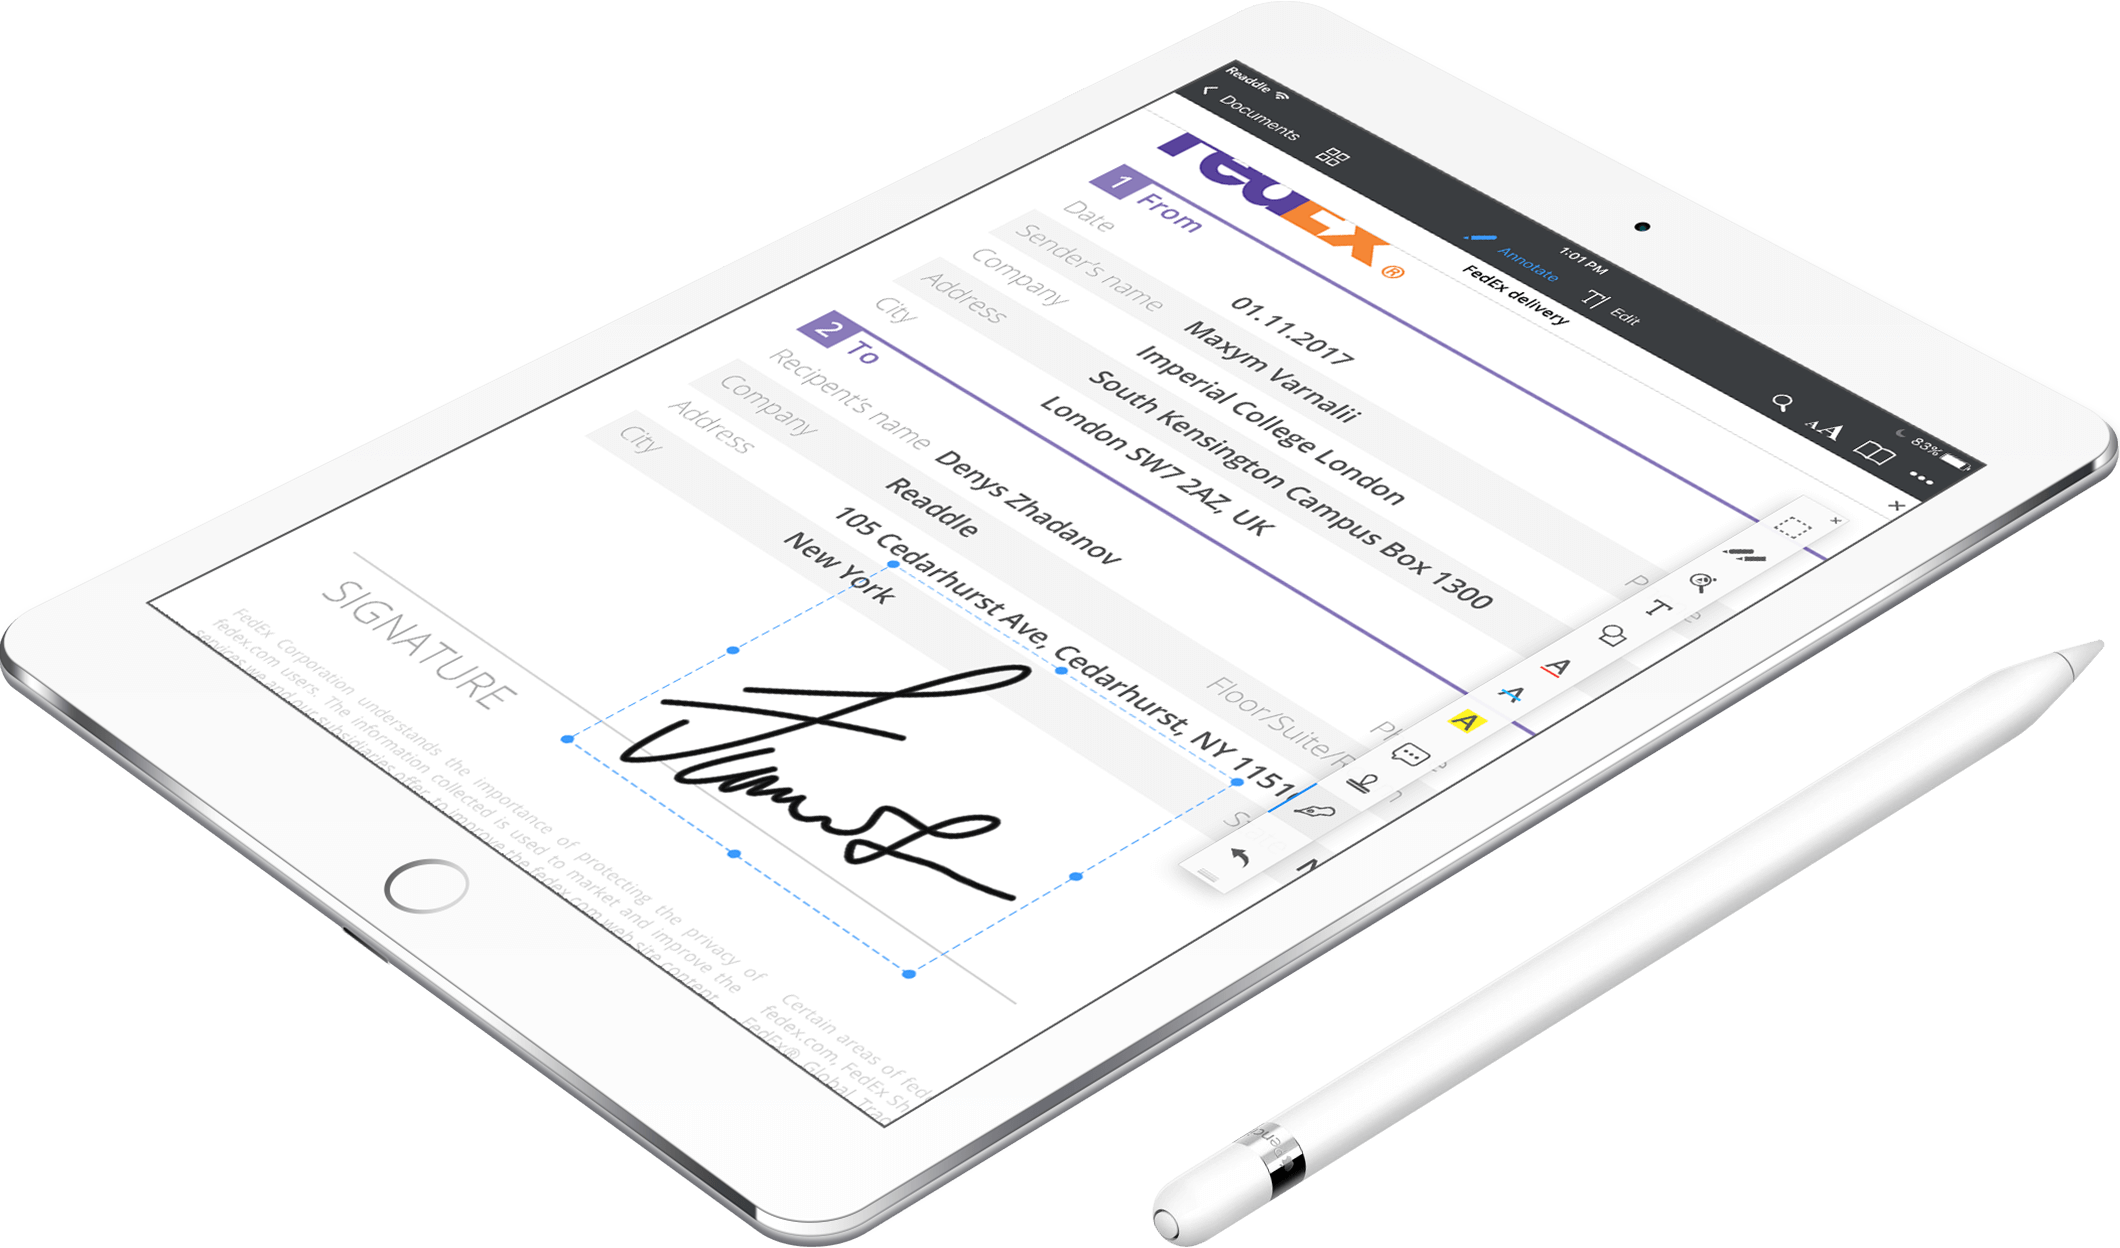 How to edit pdf files with apple pencil